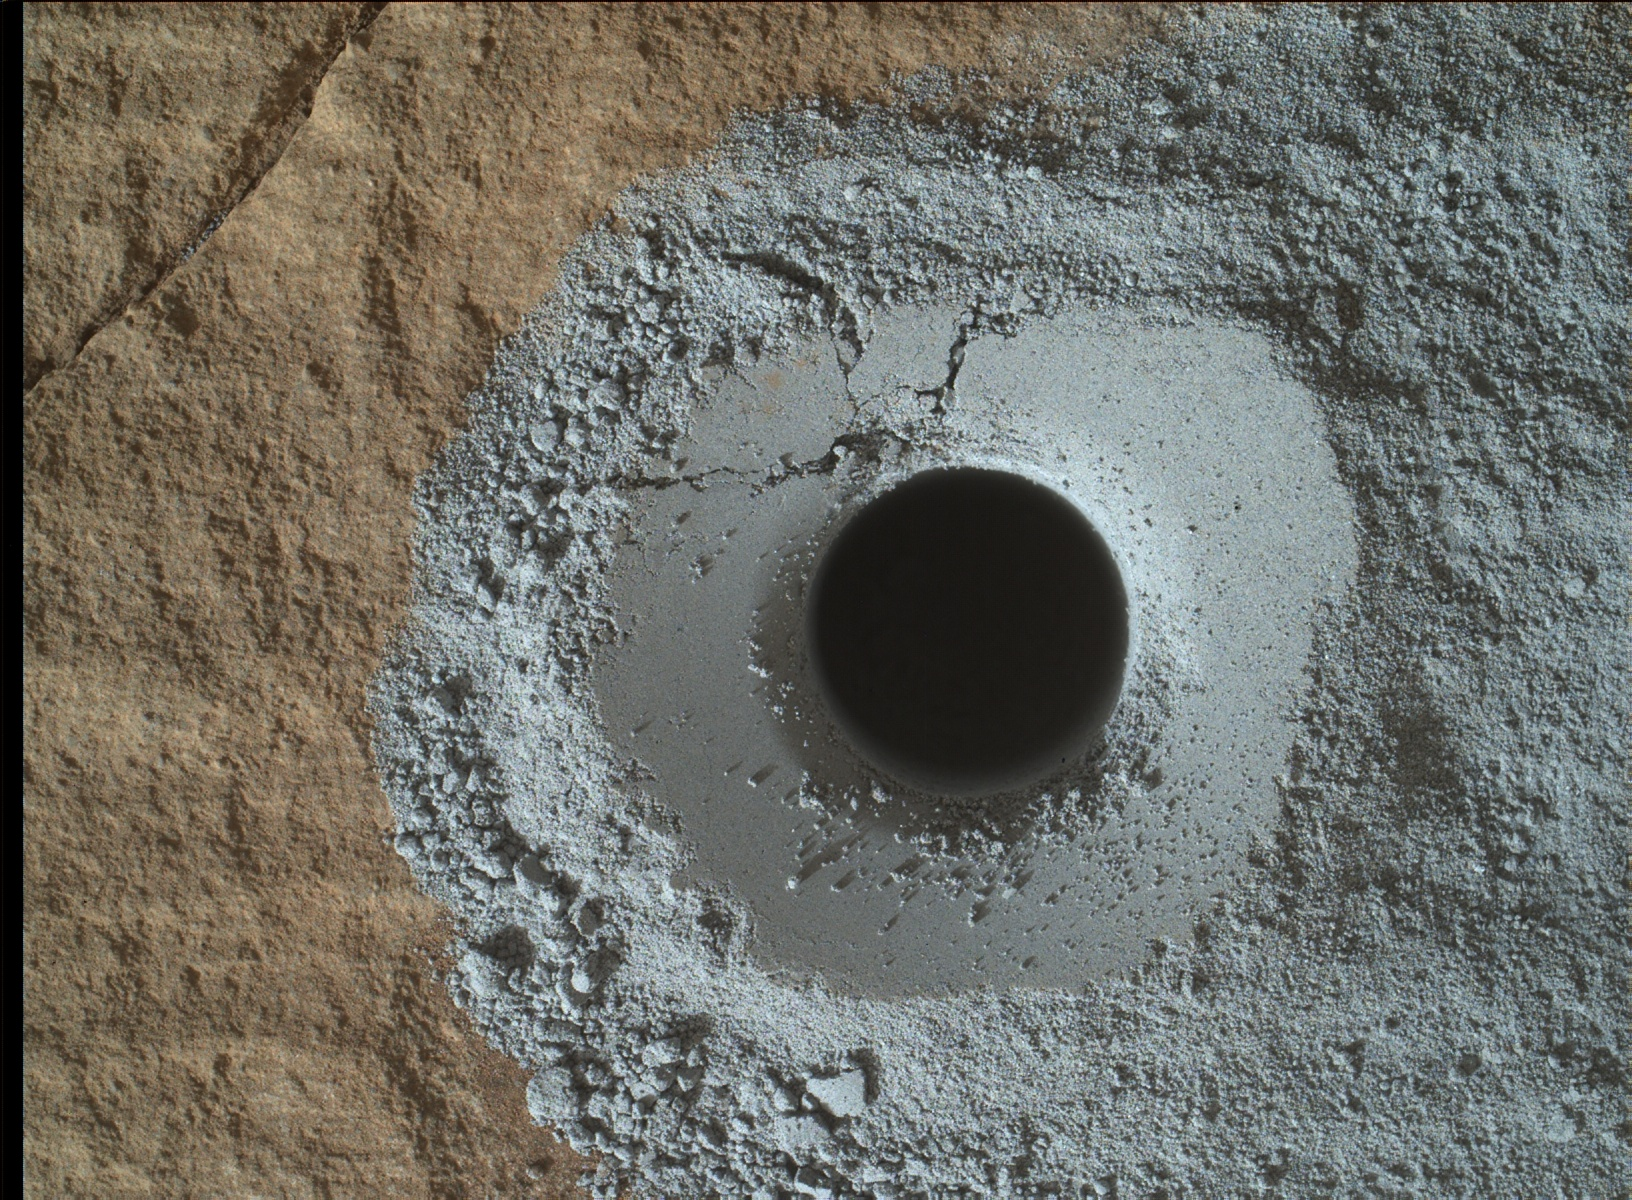 Nasa's Mars rover Curiosity acquired this image using its Mars Hand Lens Imager (MAHLI) on Sol 1137